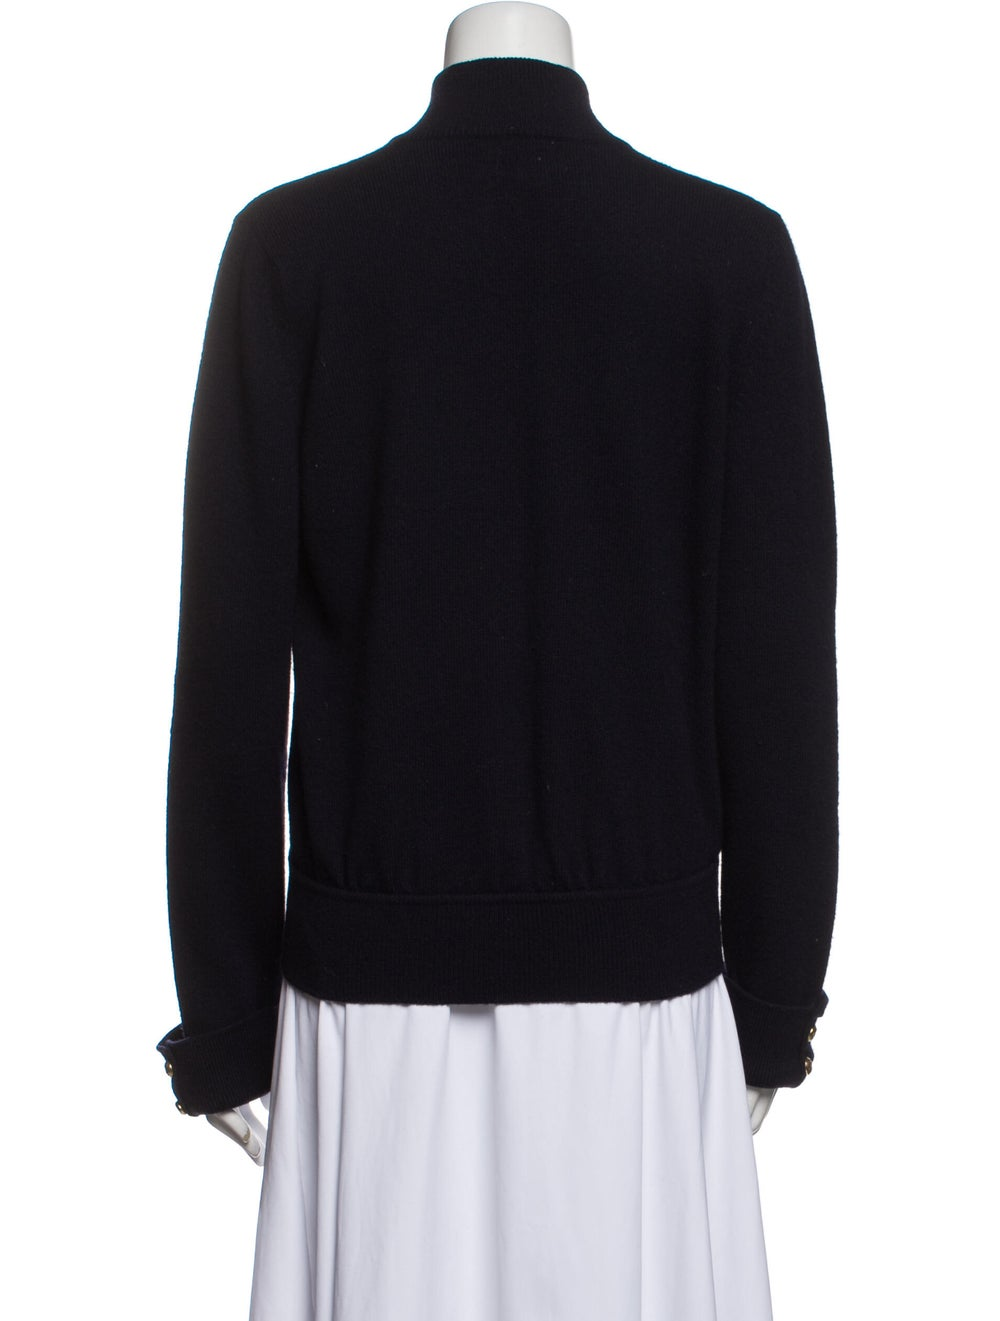 Chanel Vintage Late 1980's - Early 1990's Sweater… - image 3